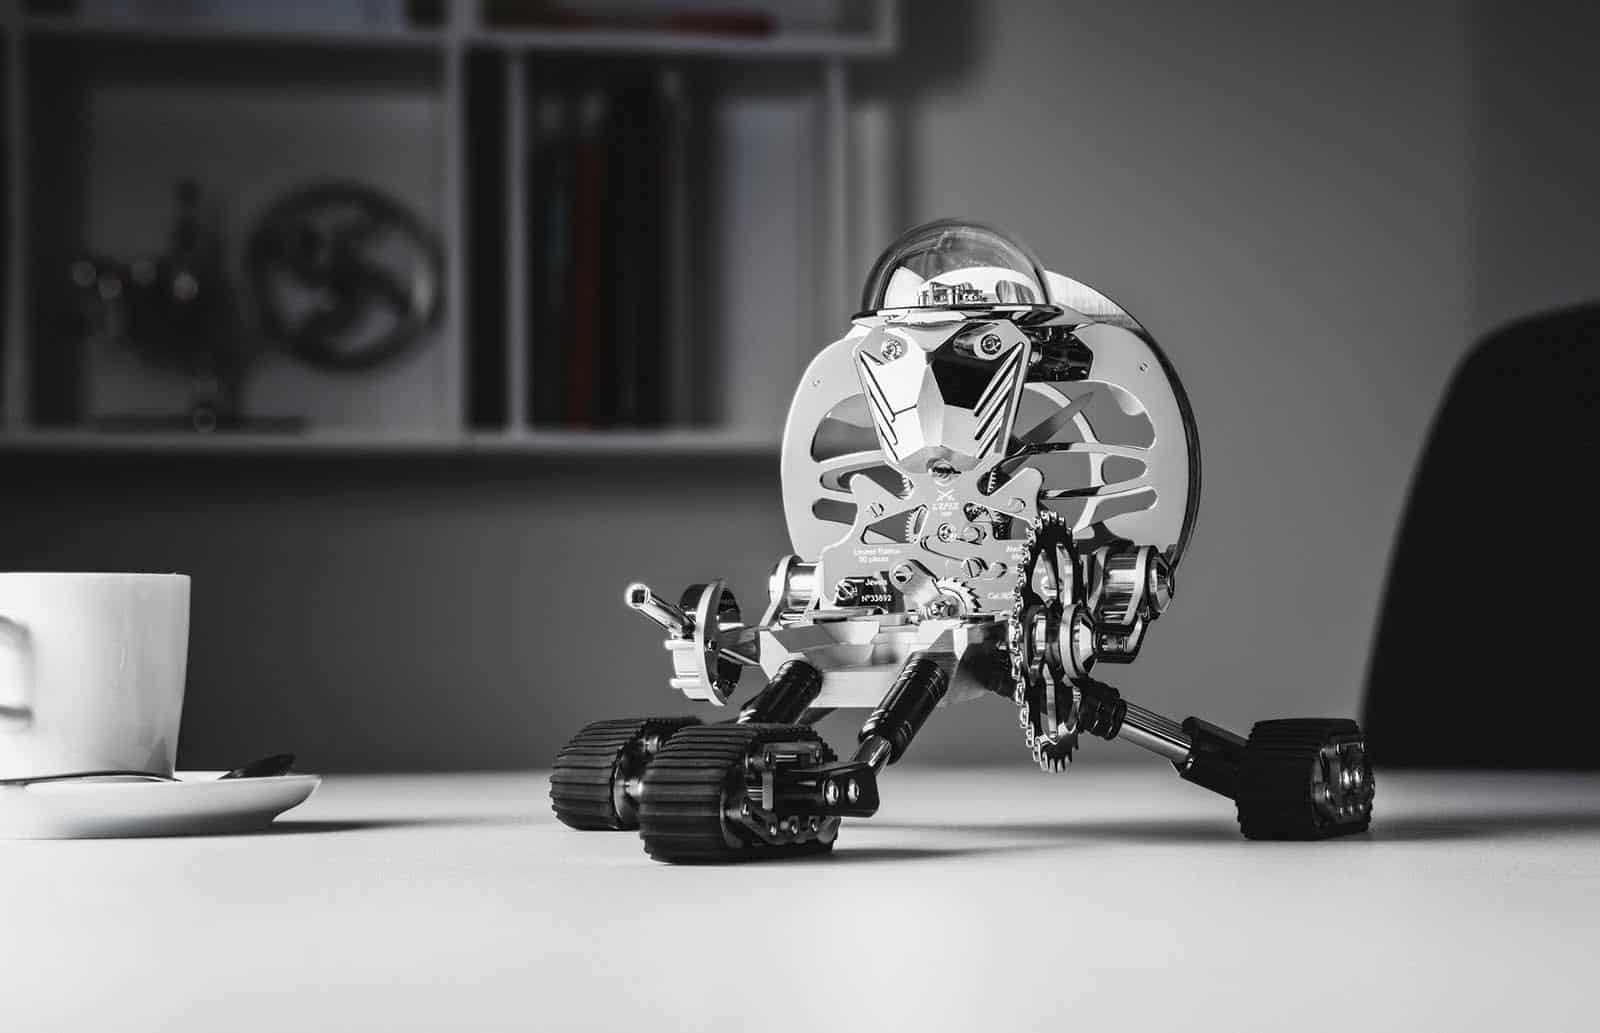 MB&F's new Robot Clock is called Grant